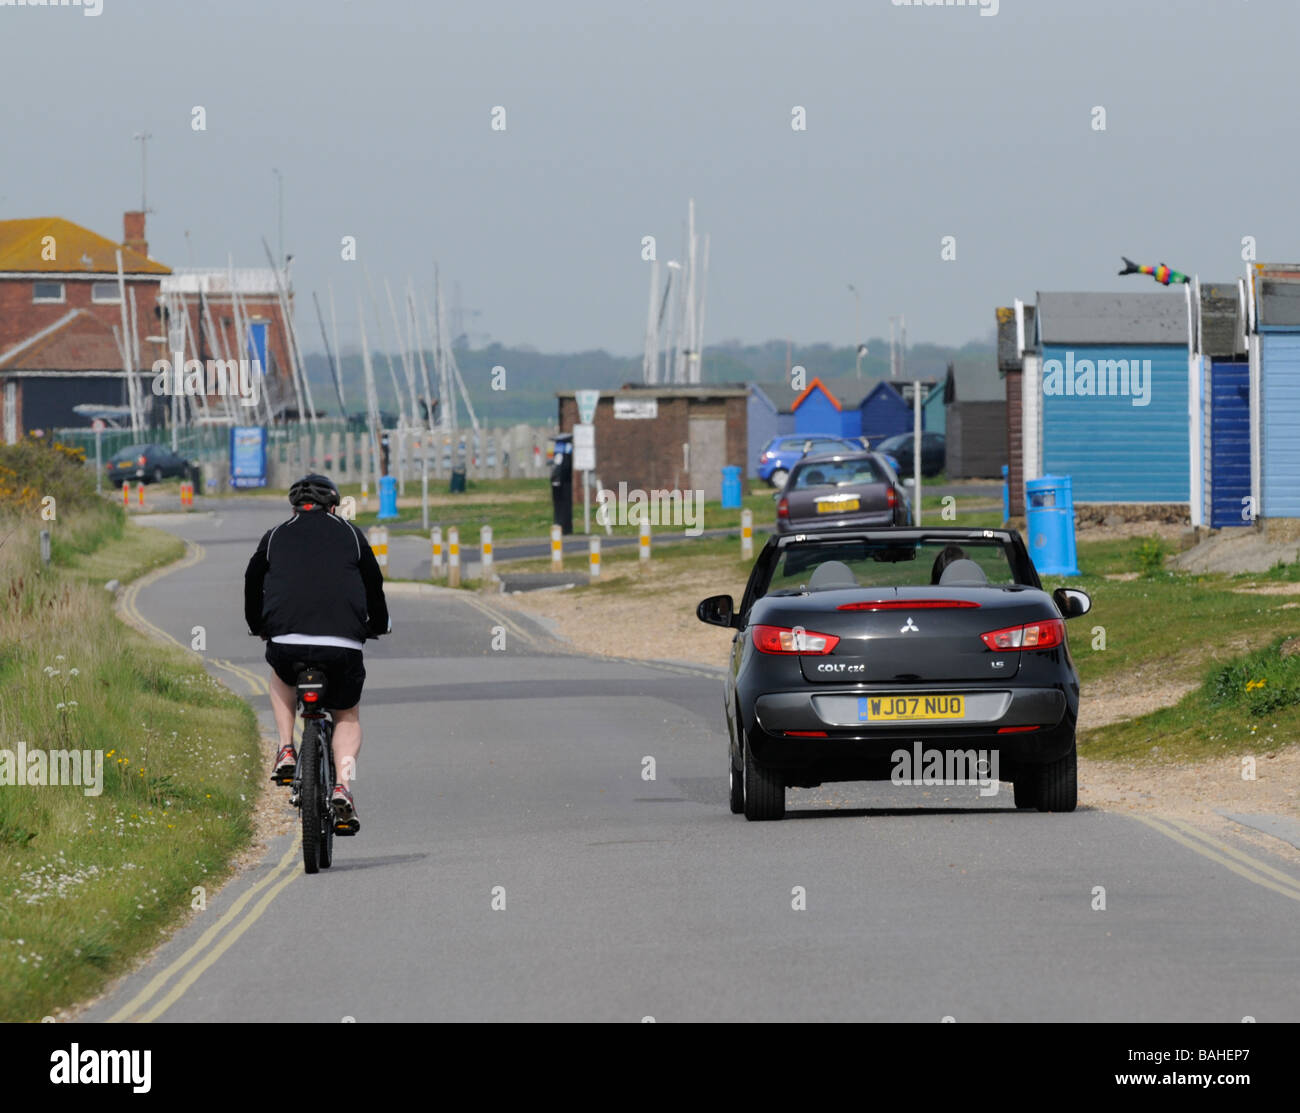 Driving Road Stock Photos & Driving Road Stock Images - Alamy